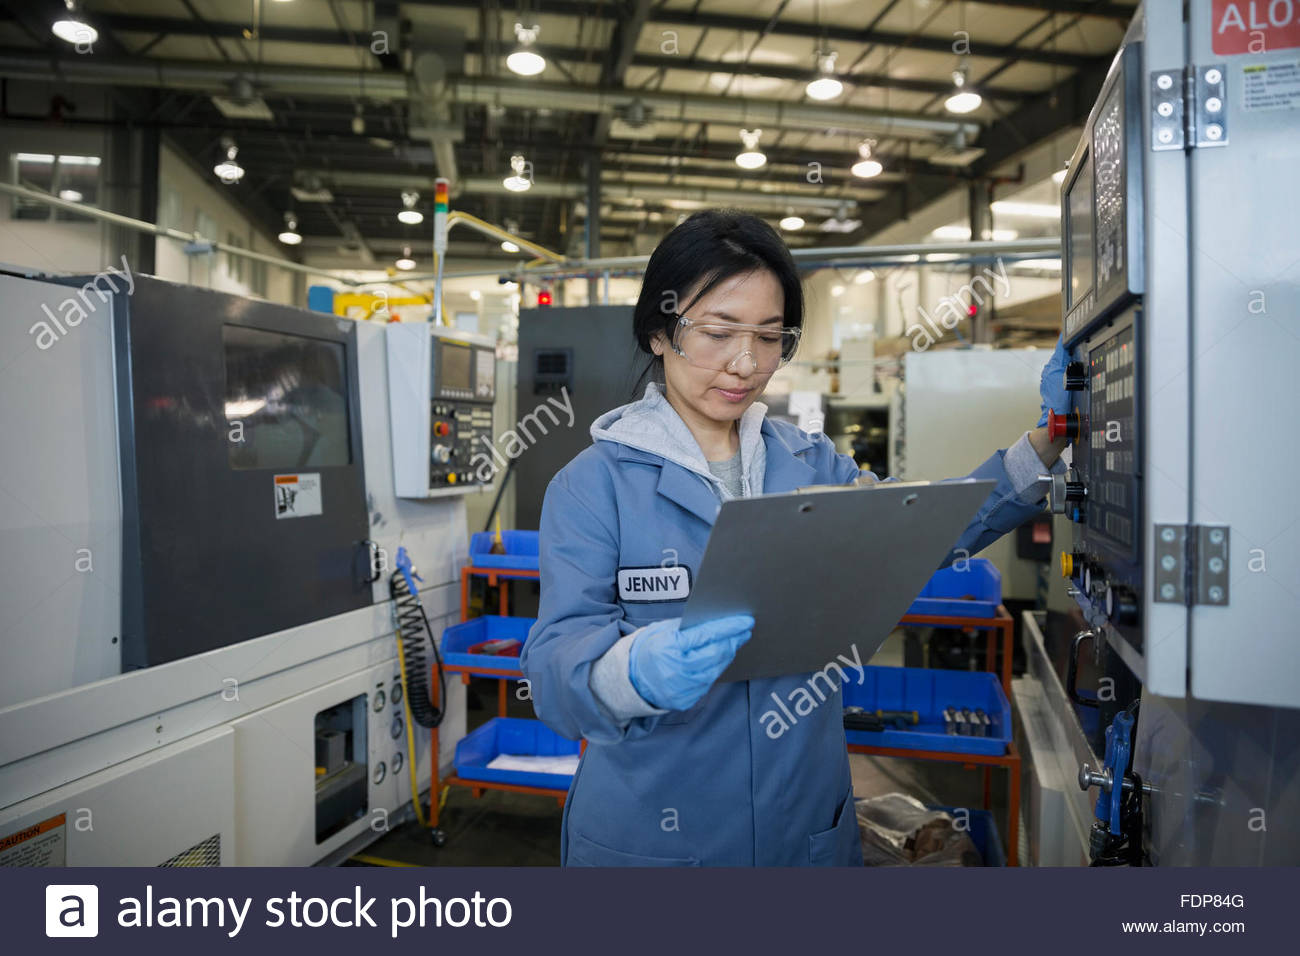 Worker looking down at clipboard in textile factory - Stock Image